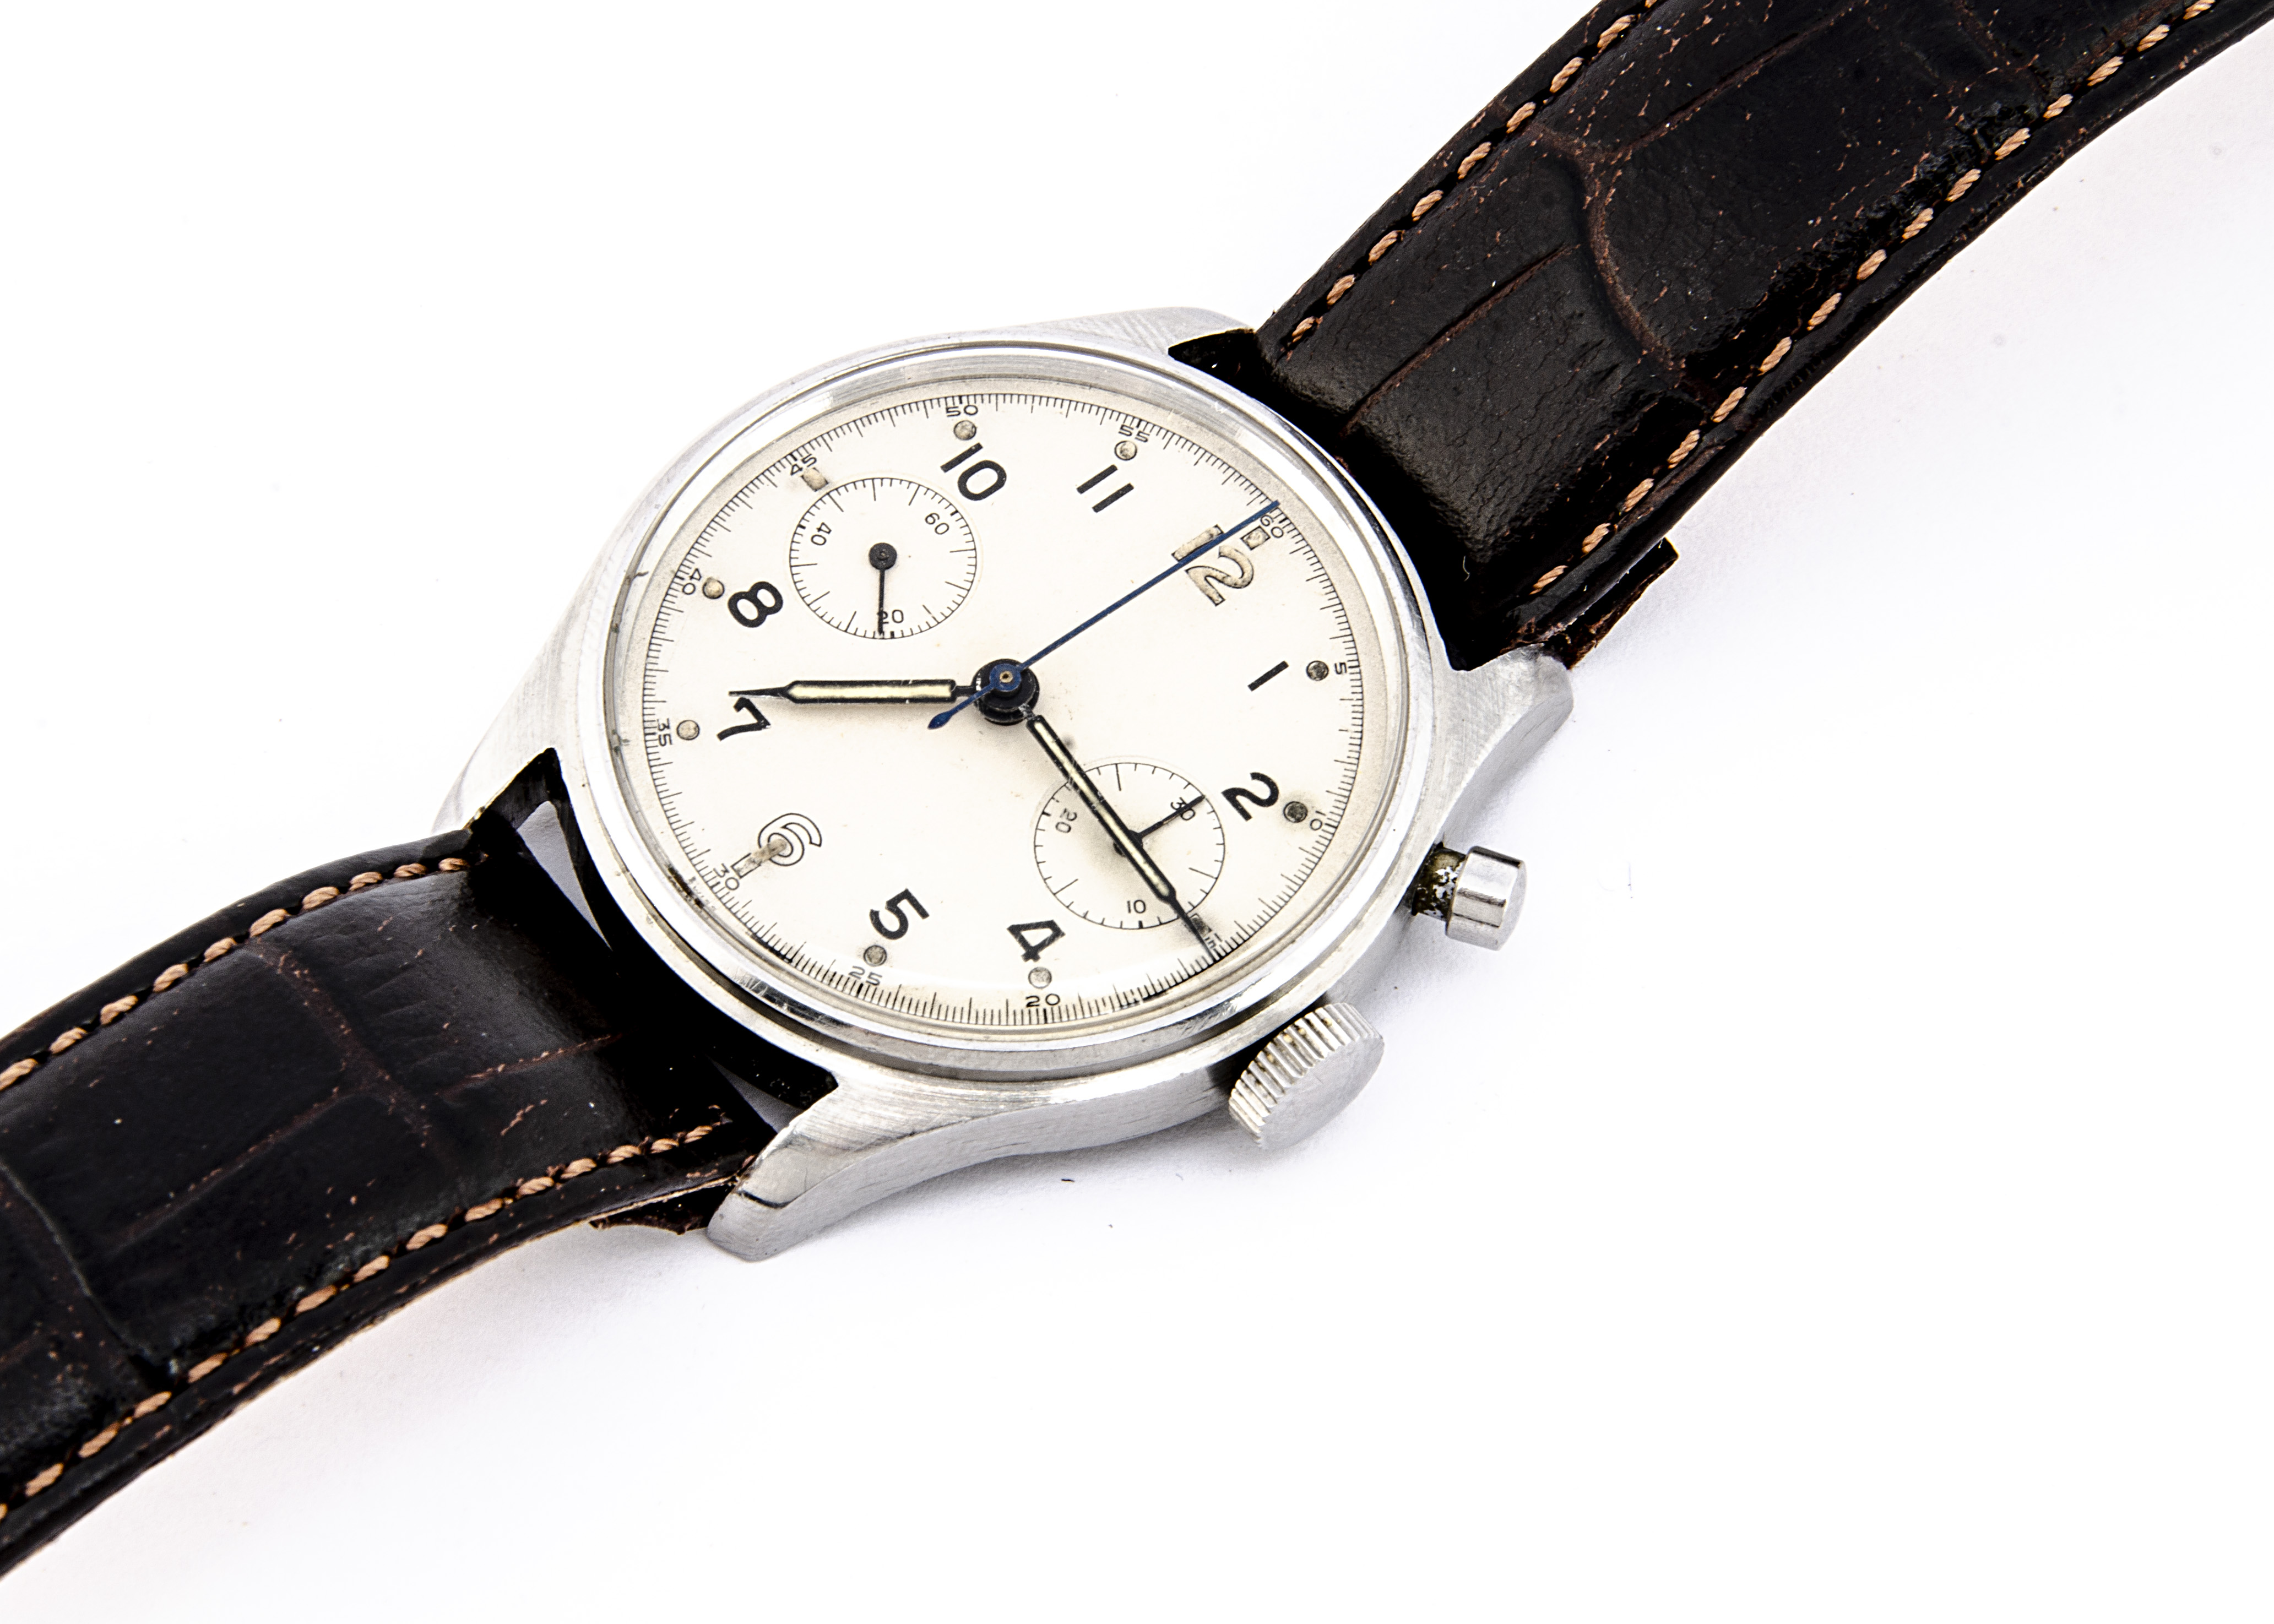 A late 1940s or early 1950s Lemania RN / FAA single button chronograph stainless steel wristwatch,